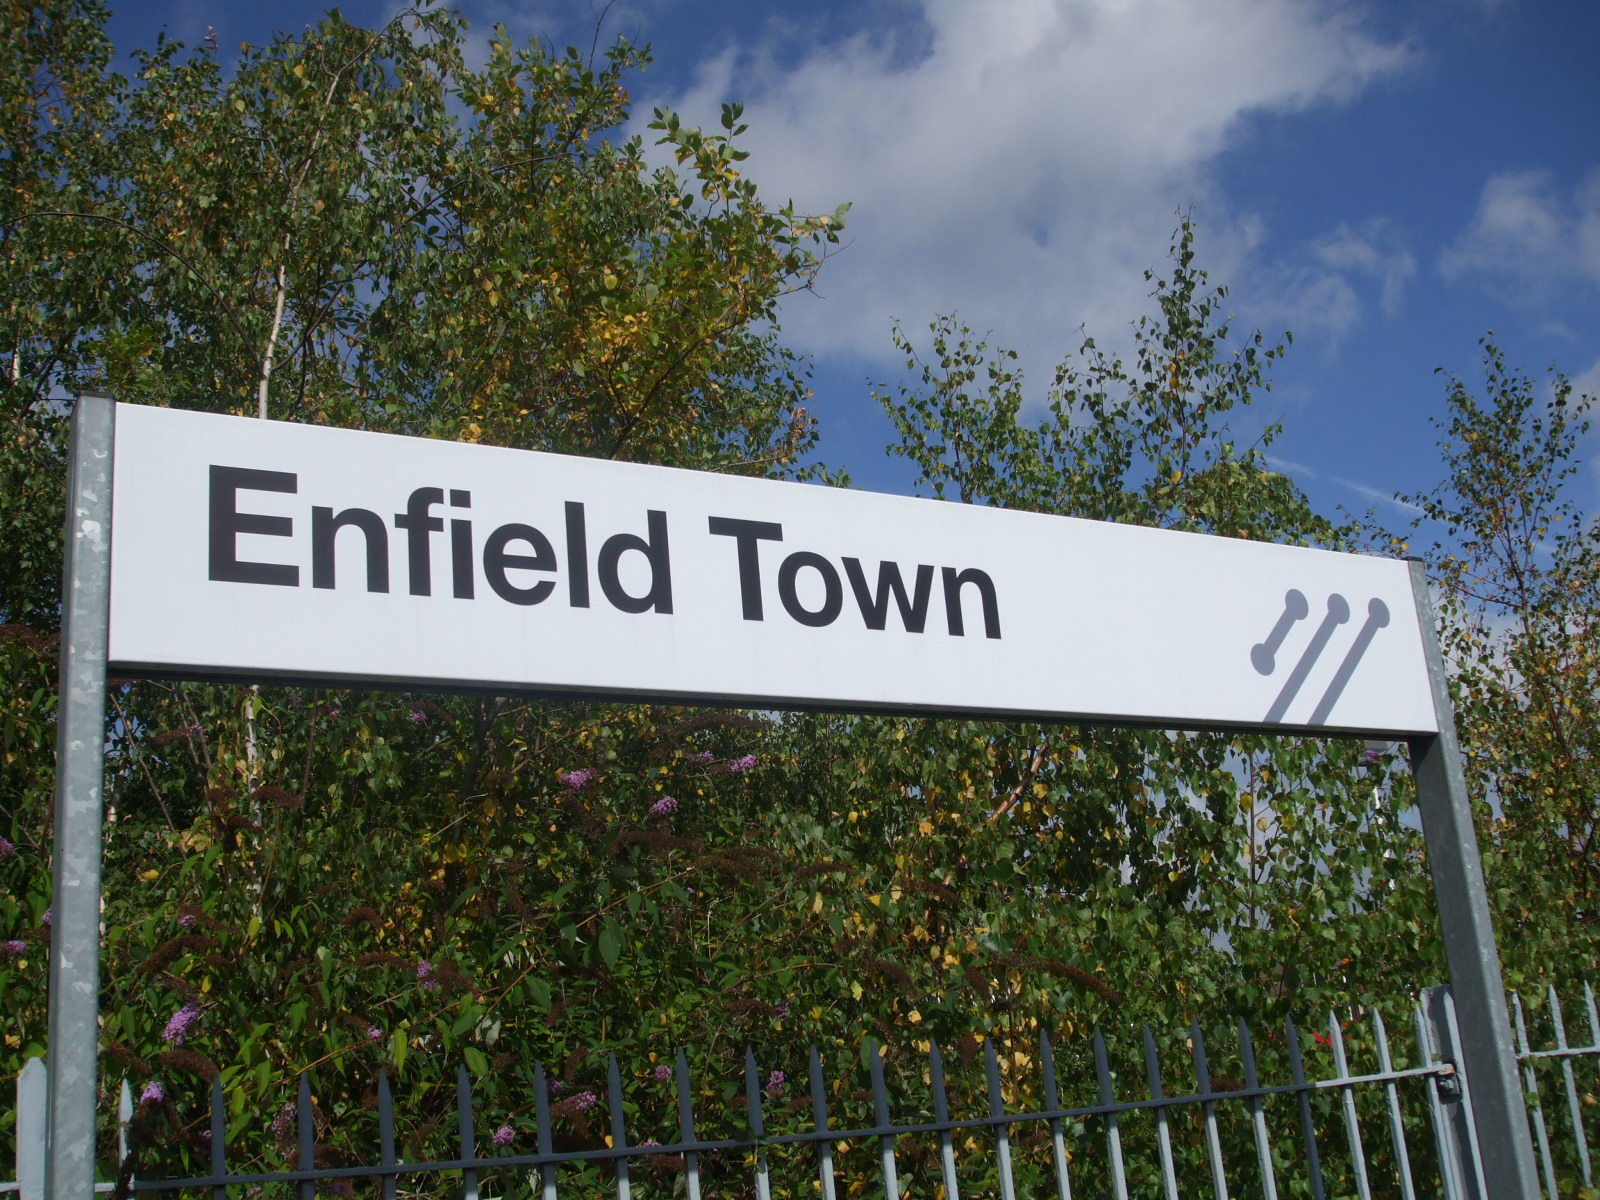 Enfield Town Shops Enfield Town F.c is a